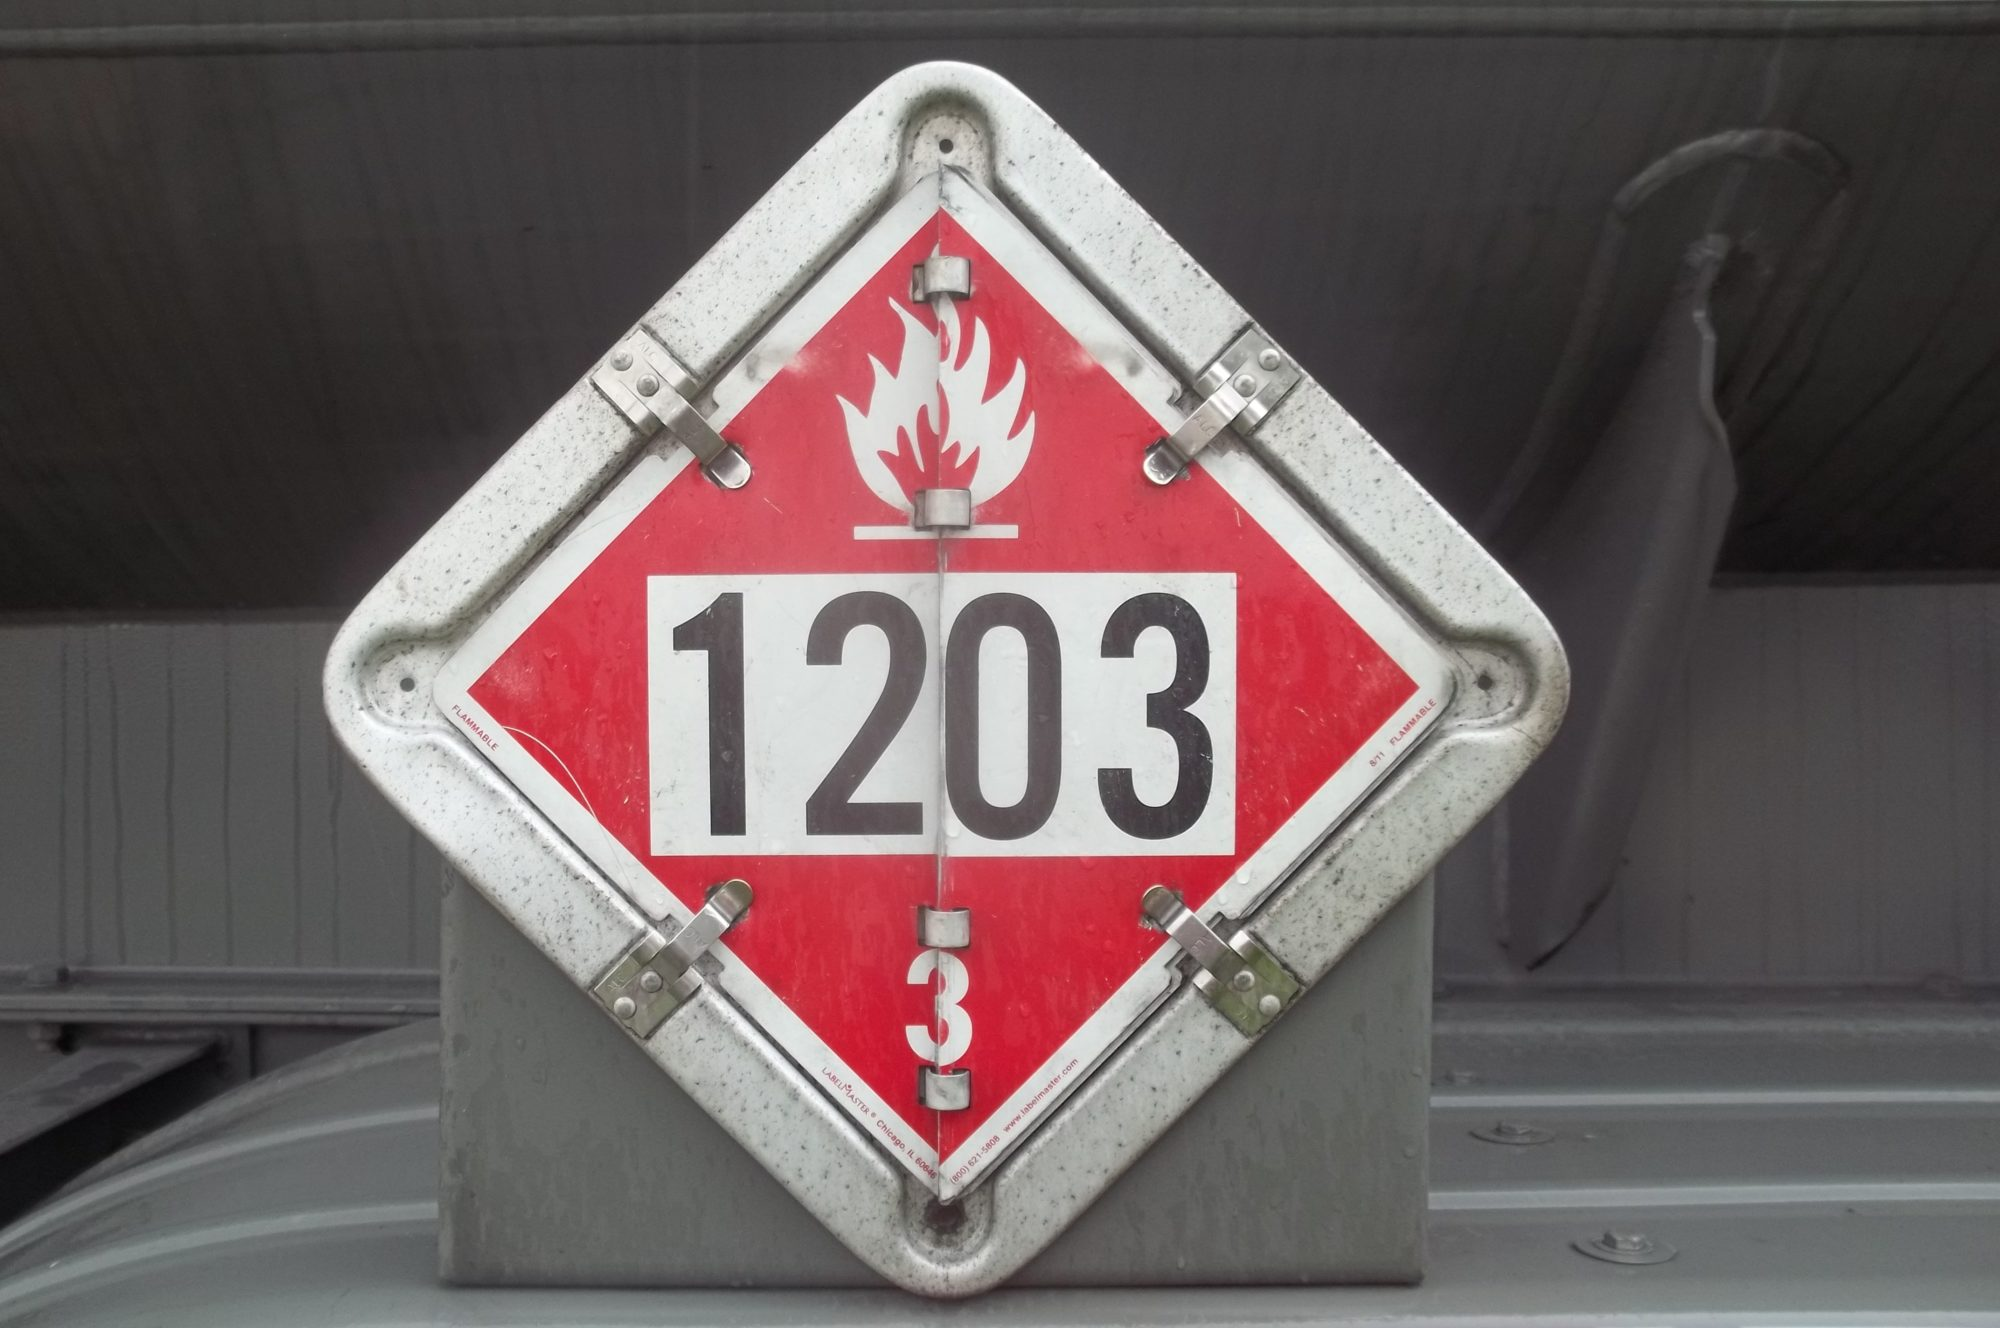 Hazmat employee training daniels training services placard and id number for gasoline biocorpaavc Choice Image